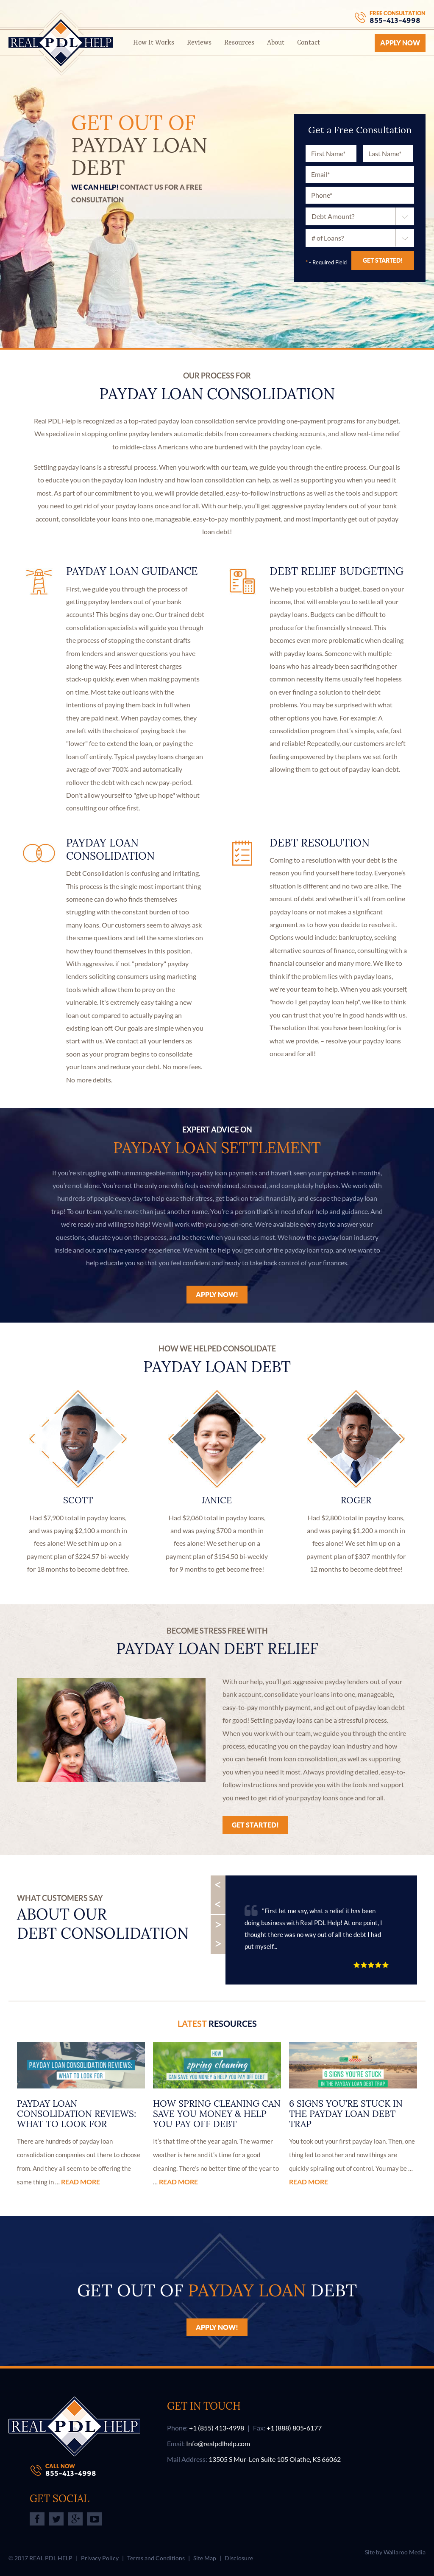 Single payment payday loans photo 3